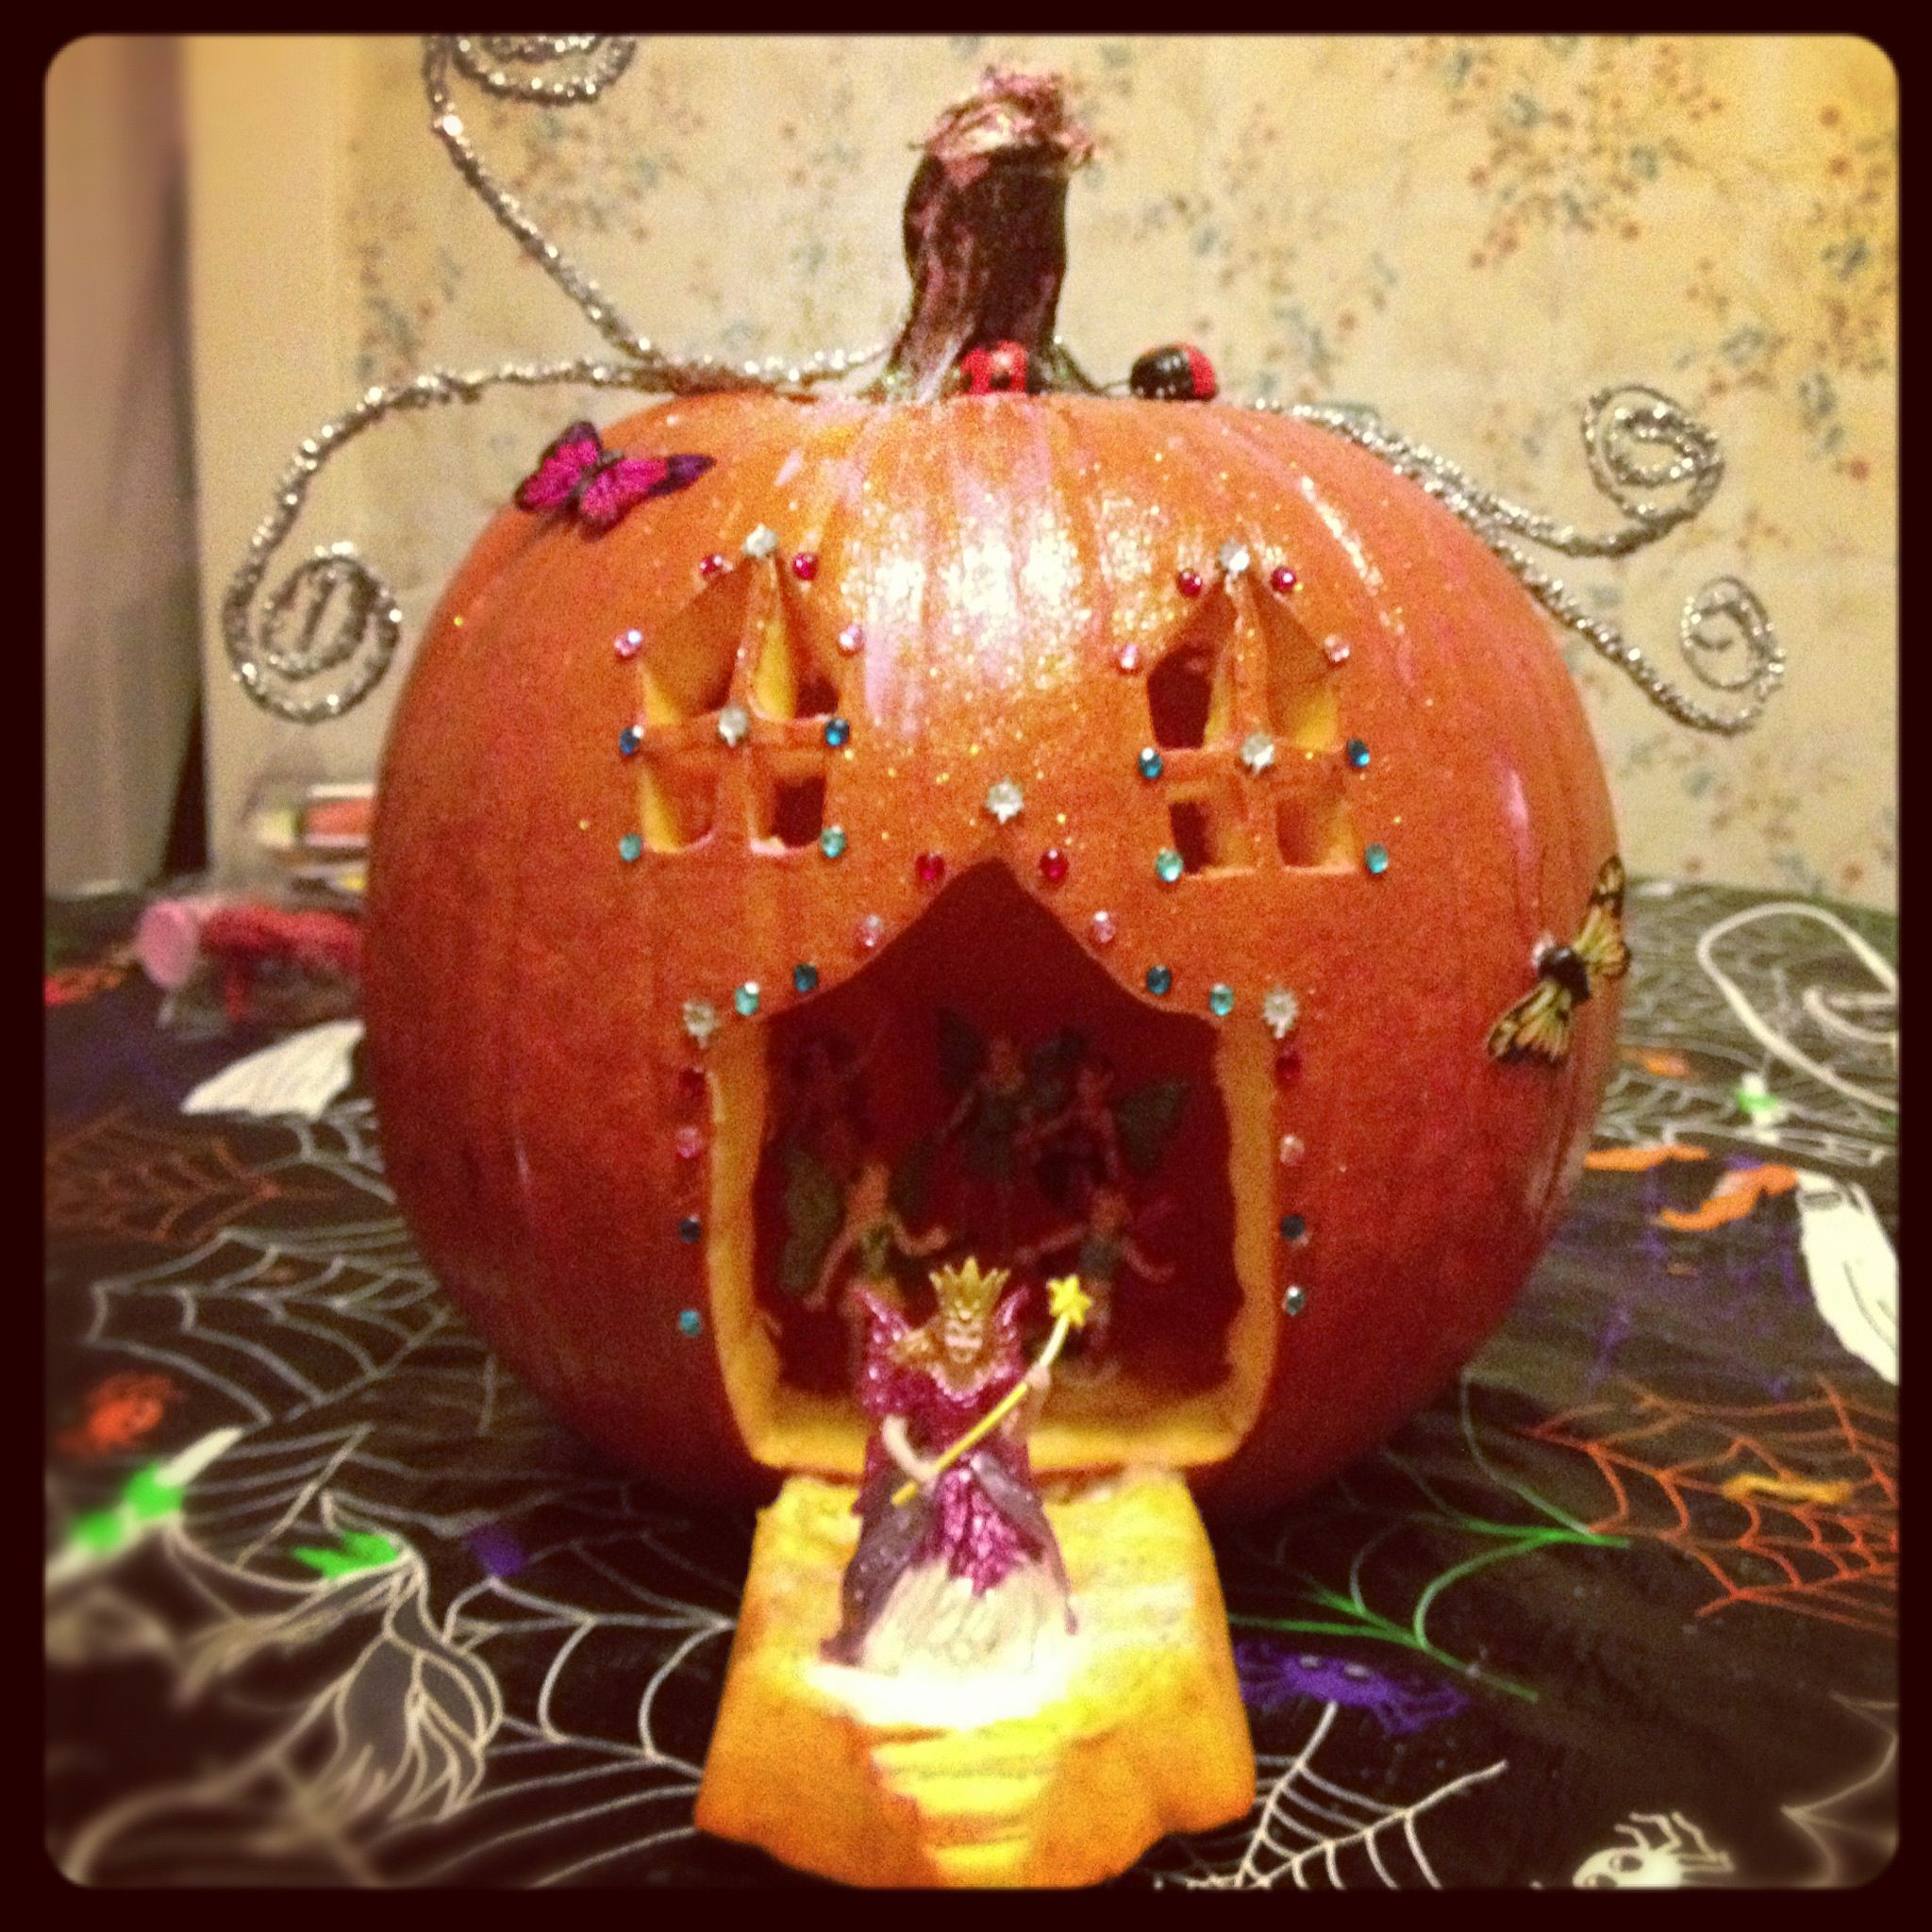 My Carved Fairy House Pumpkin I Created As An Entry For A Pumpkin Decorating Contest At Work 1st Halloween Fairy Garden Pumpkin Fairy House Pumpkin Decorating